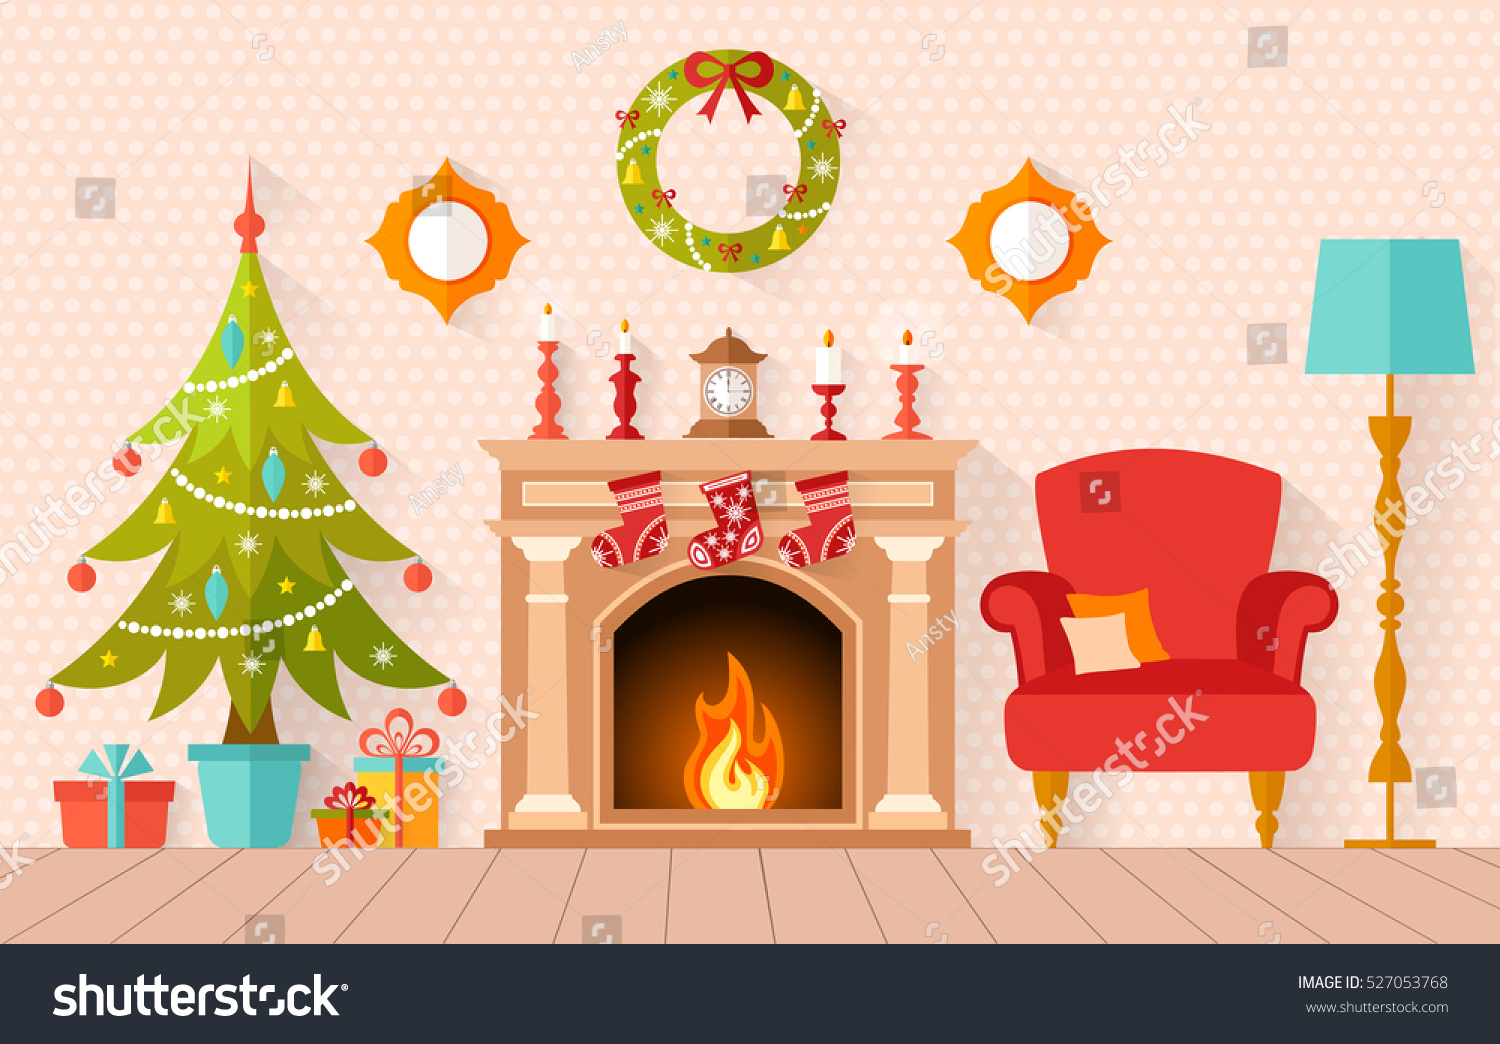 Fireplace Screens Tree Design Christmas Interior Design Christmas Tree Fireplace Stock